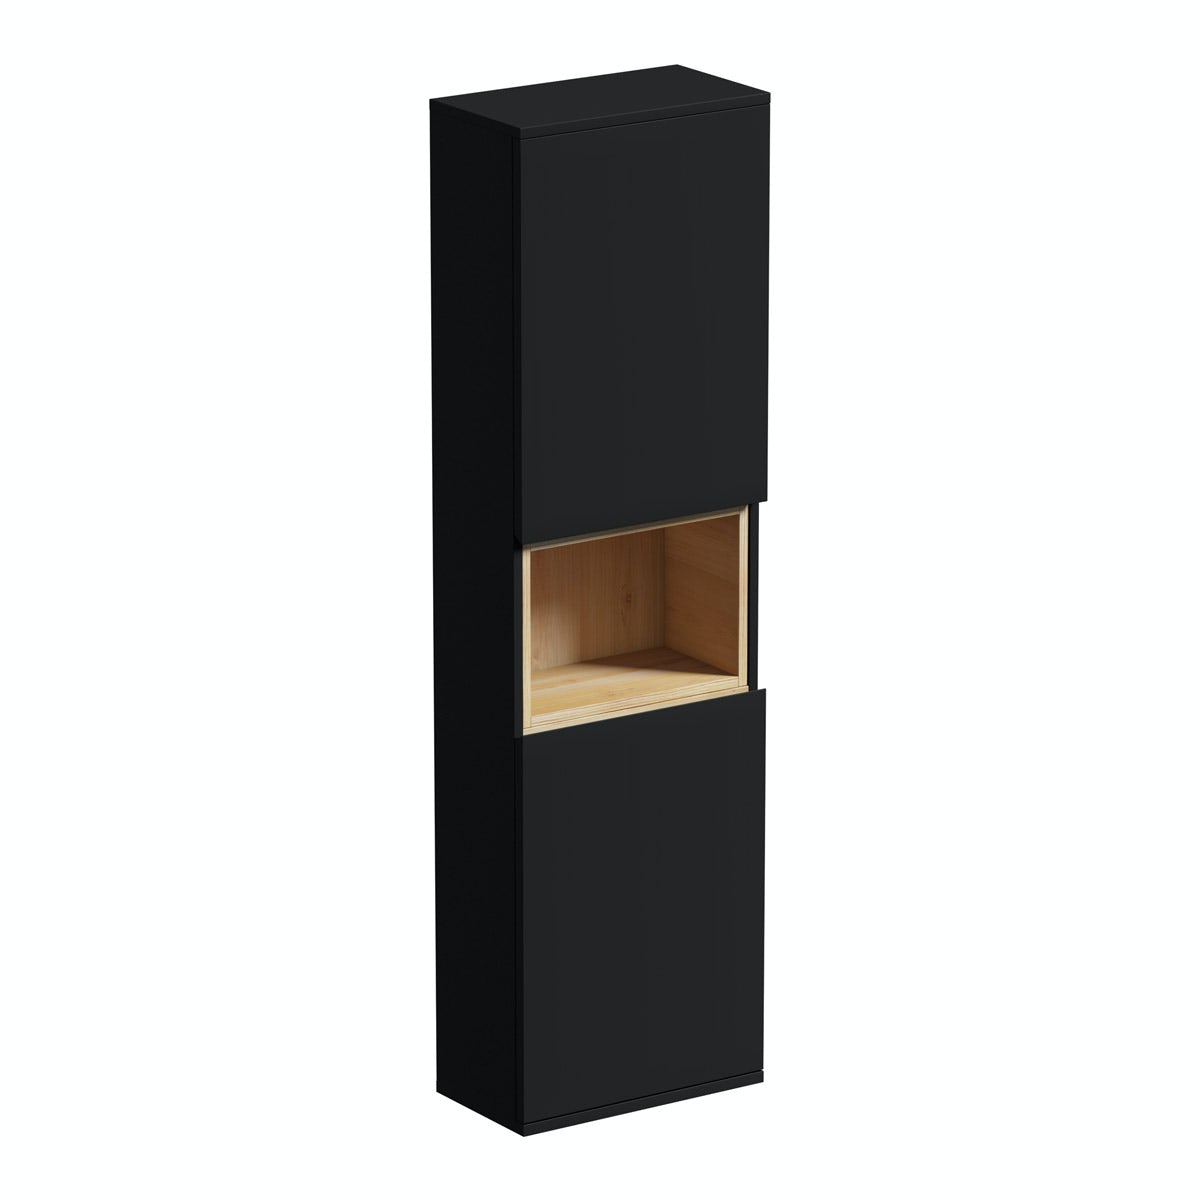 Mode Tate anthracite & oak wall cabinet